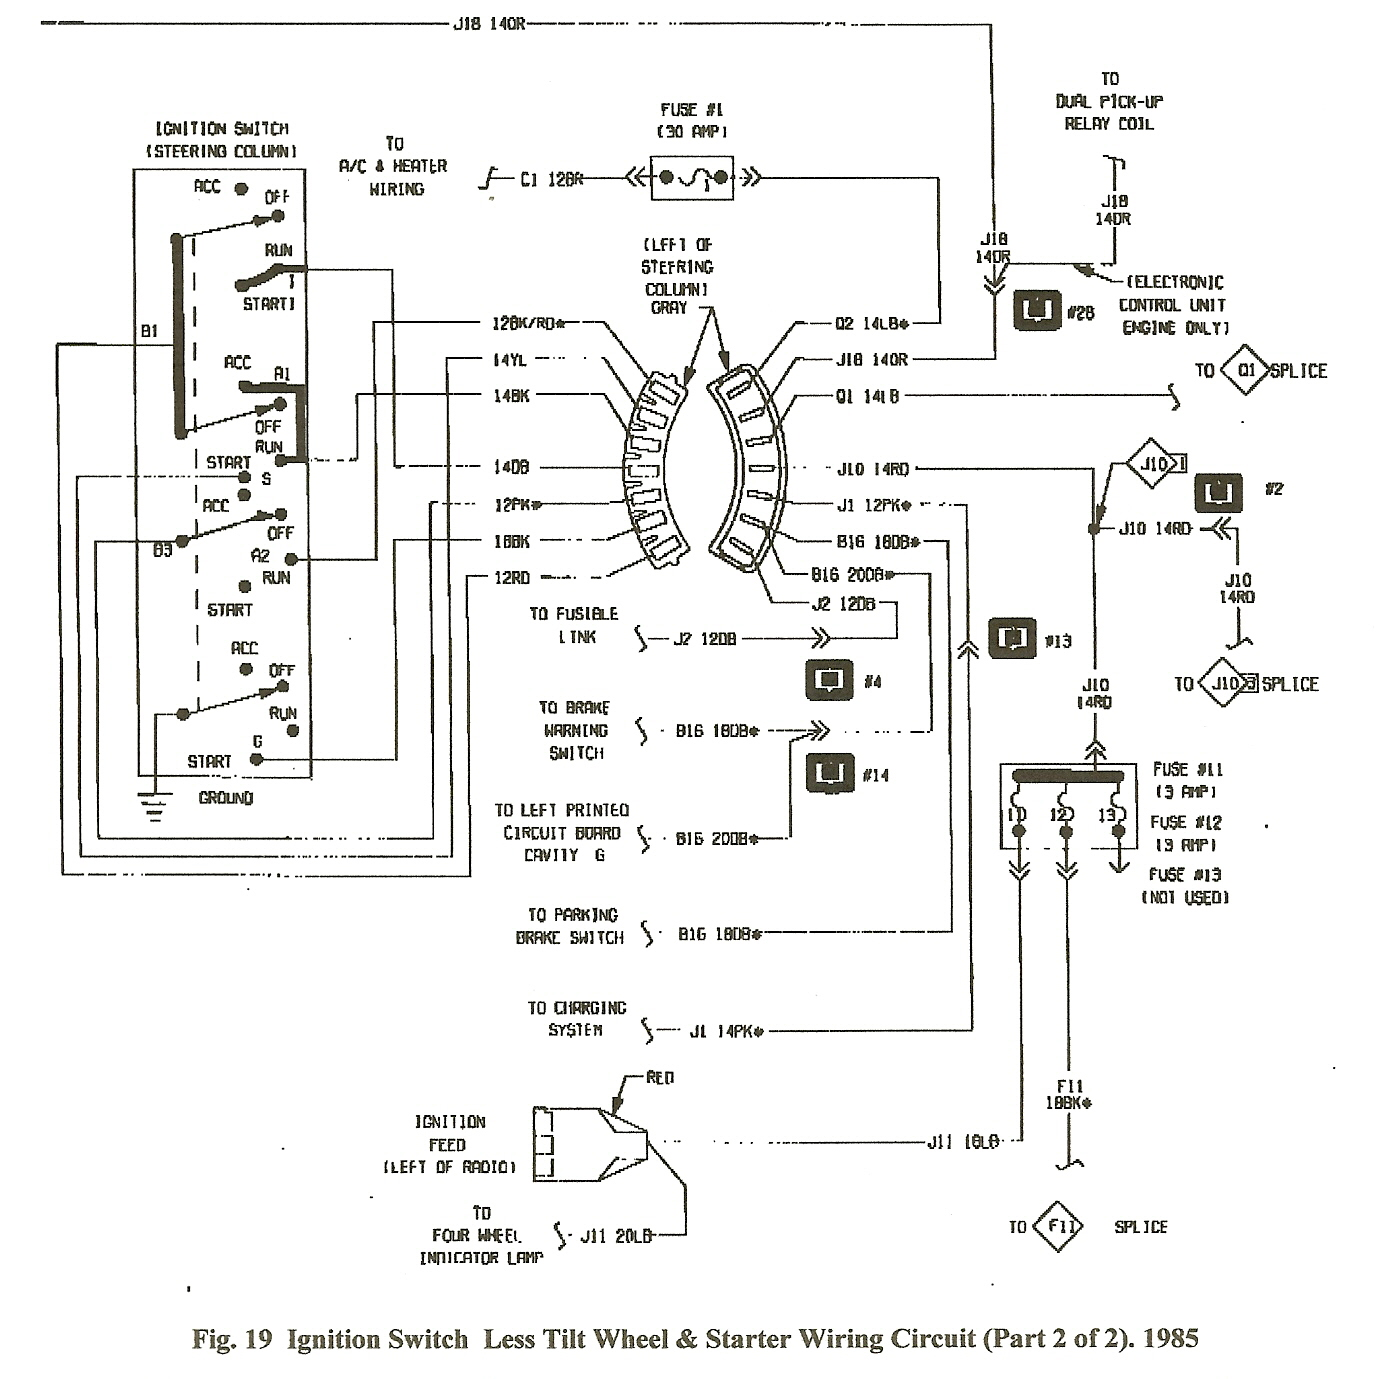 1978 winnebago wiring diagram schematic wiring diagram simonand 2001 dodge ram ignition switch wiring diagram at readyjetset.co